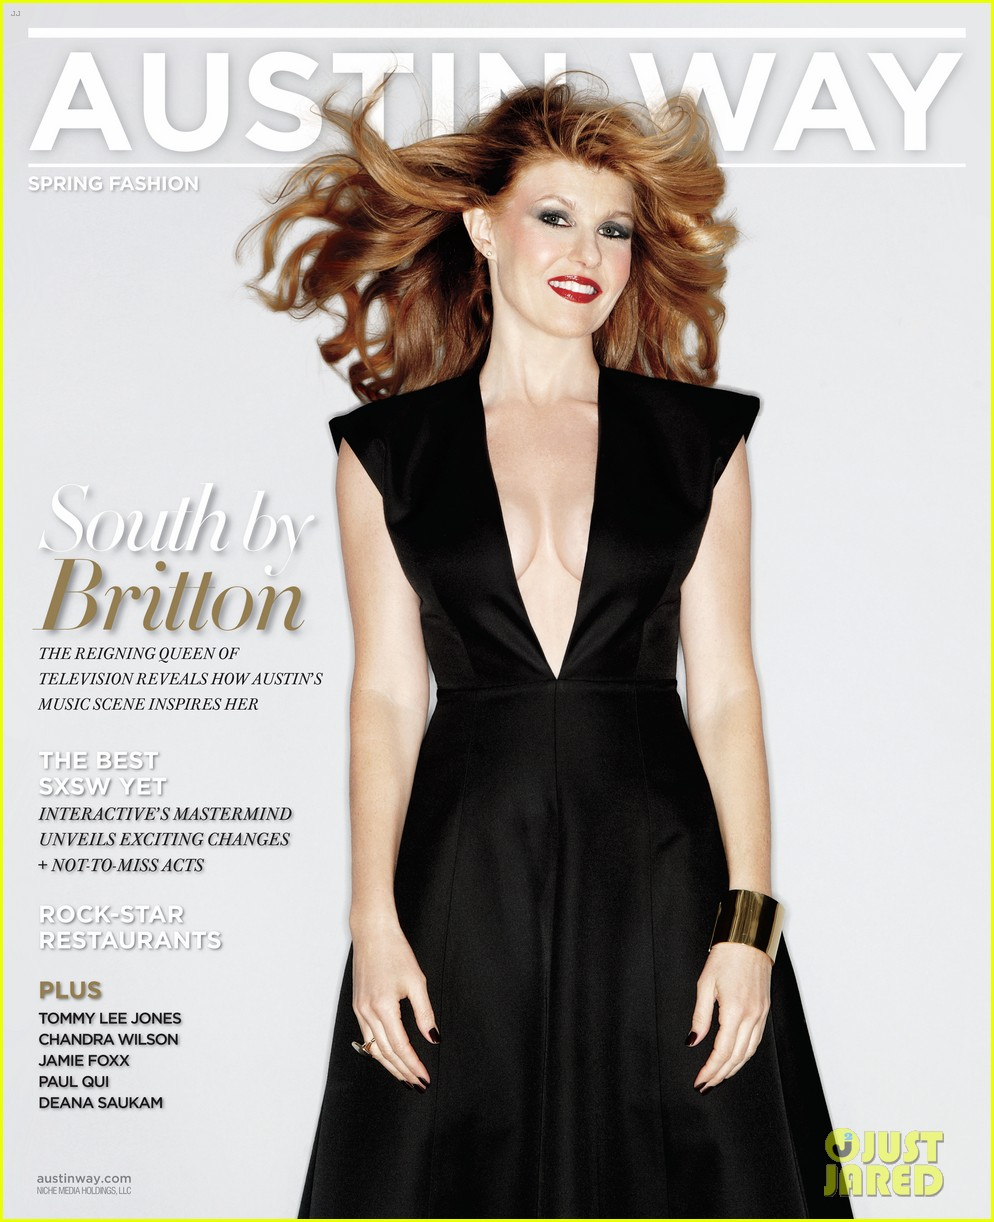 25_connie-britton-austin-way-cover-02.jpg